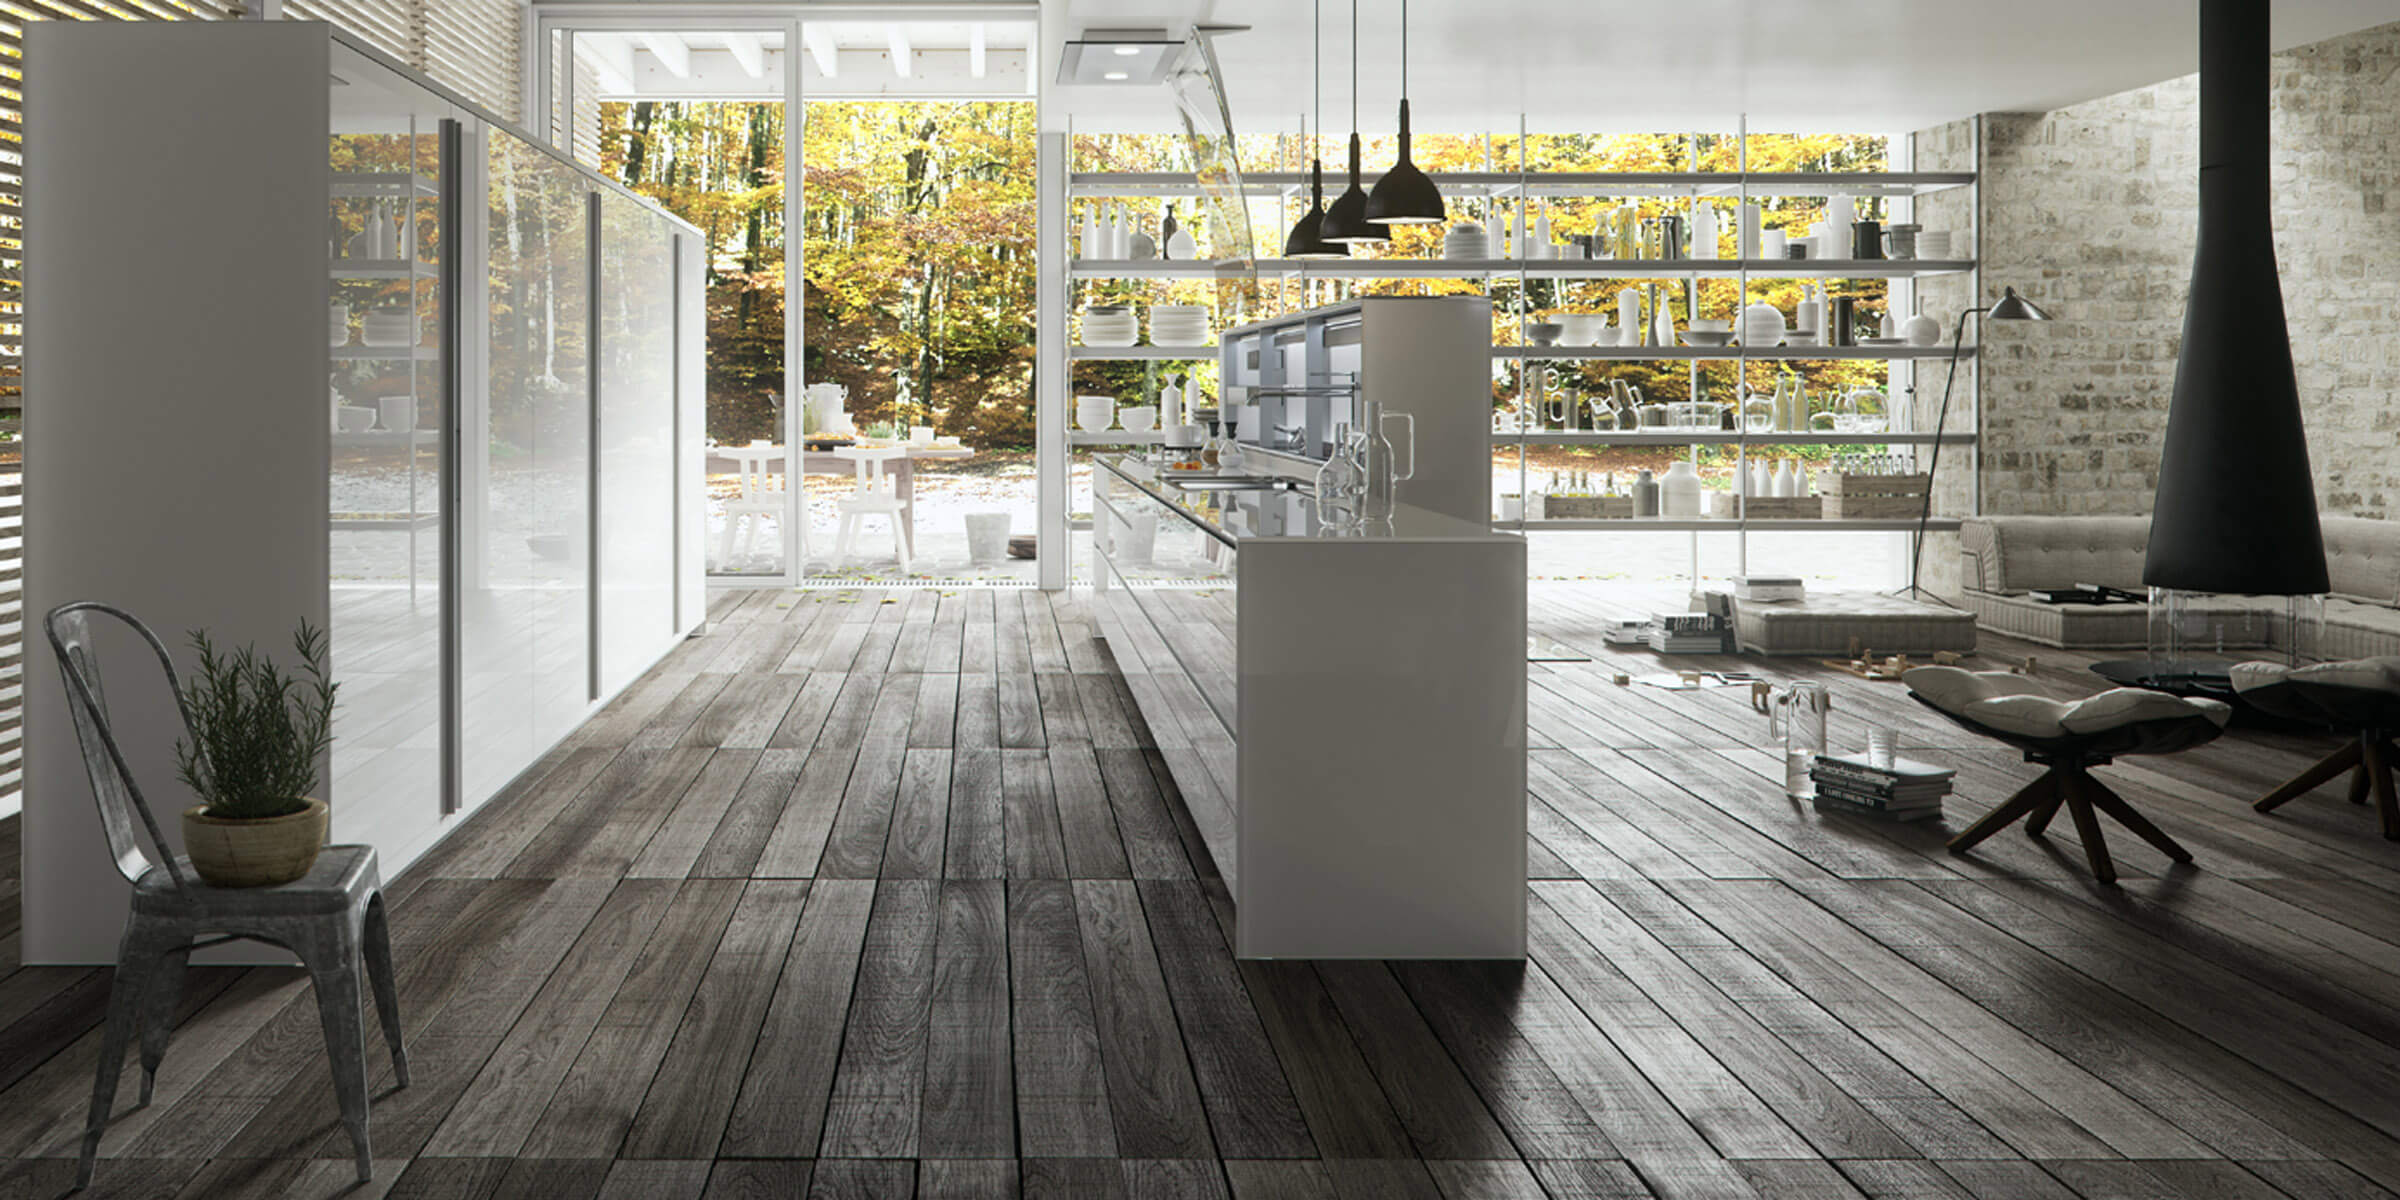 363 new logica system glass kitchen  - Cocinas de Cristal